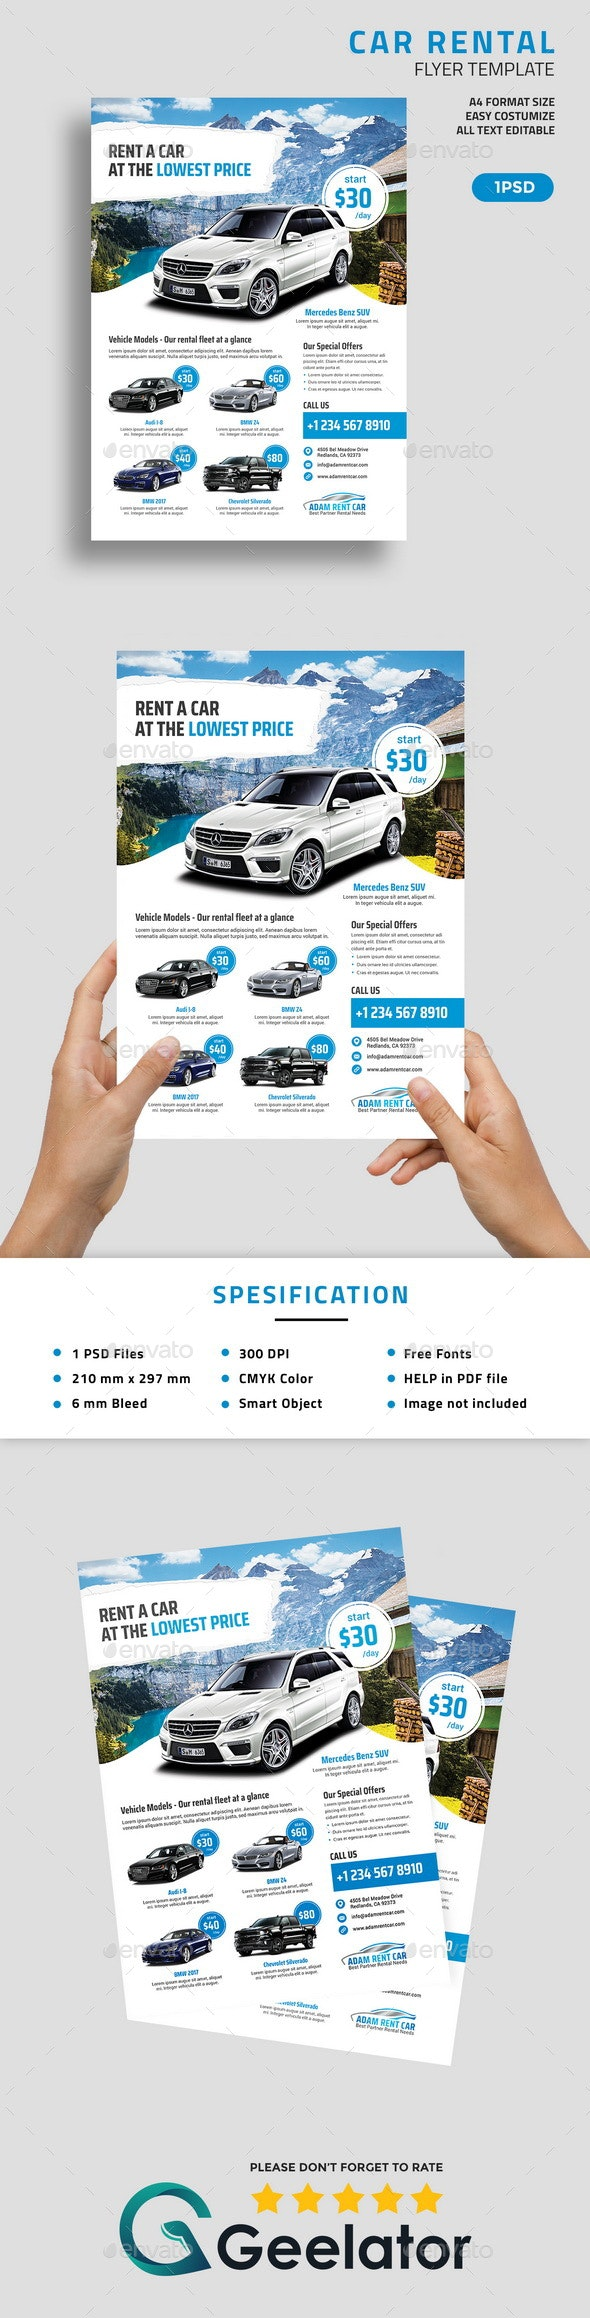 Car Rental Flyer Template - Corporate Flyers